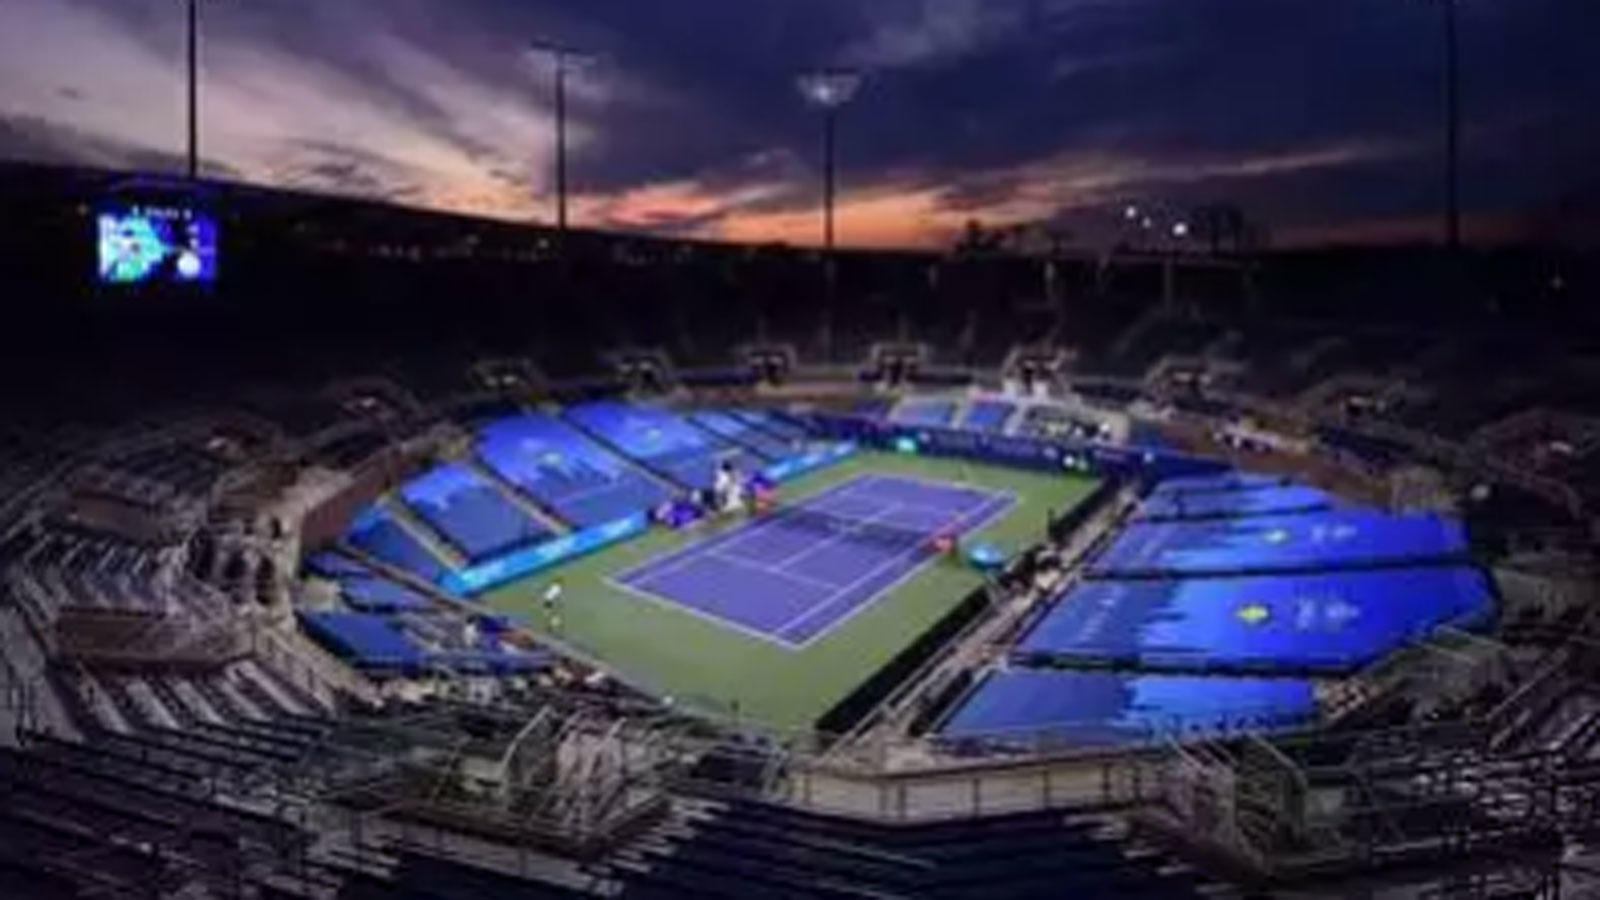 tennis-event-in-new-york-suspended-over-shooting-protests-osaka-withdraws